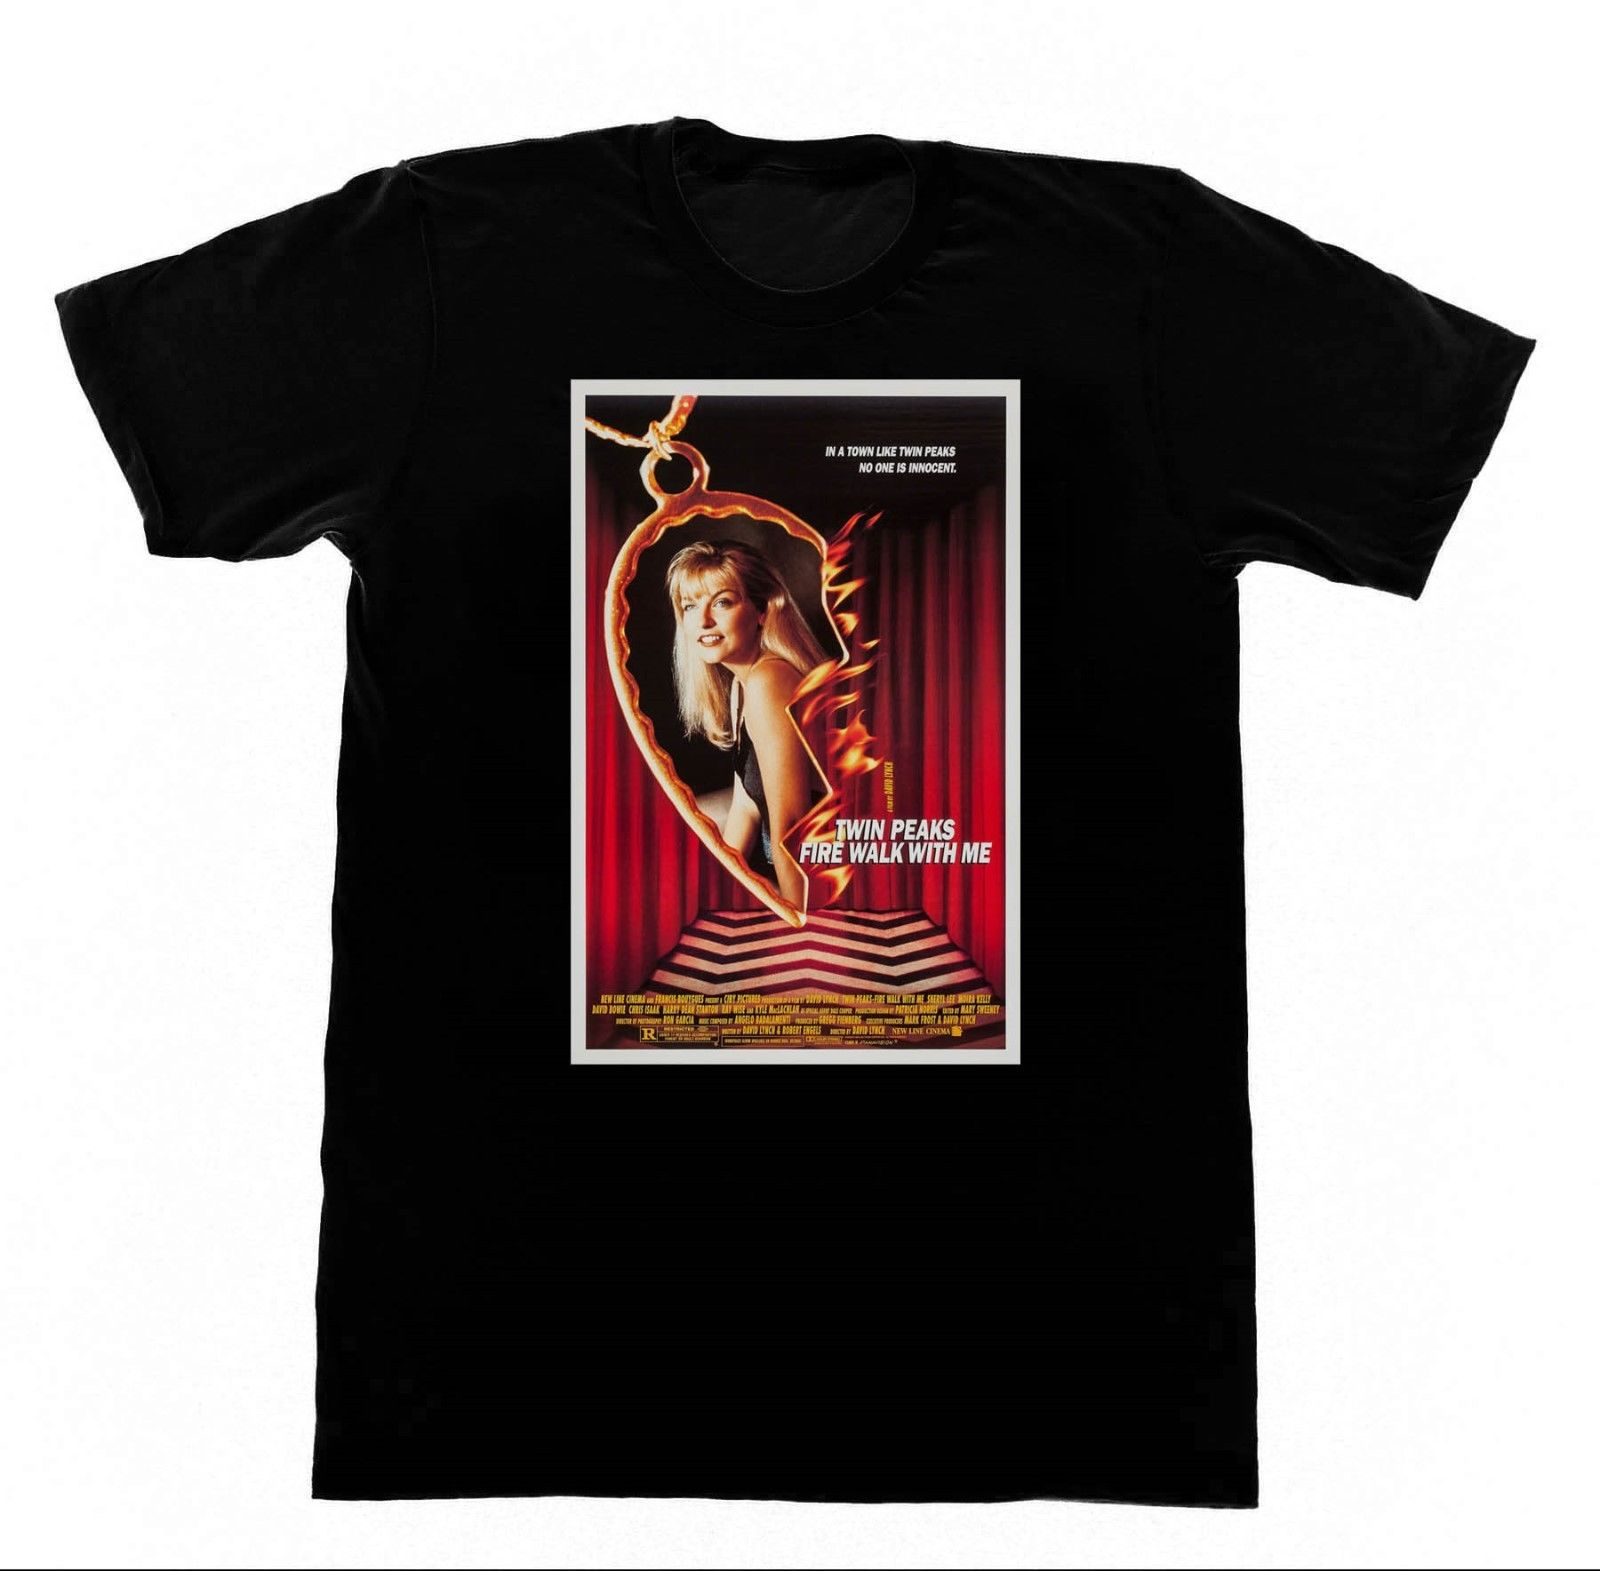 Twin Peaks Fire Walk with Me T-shirt David Lynch Eraserhead Fashion Men and Woman T Shirt Free Shipping